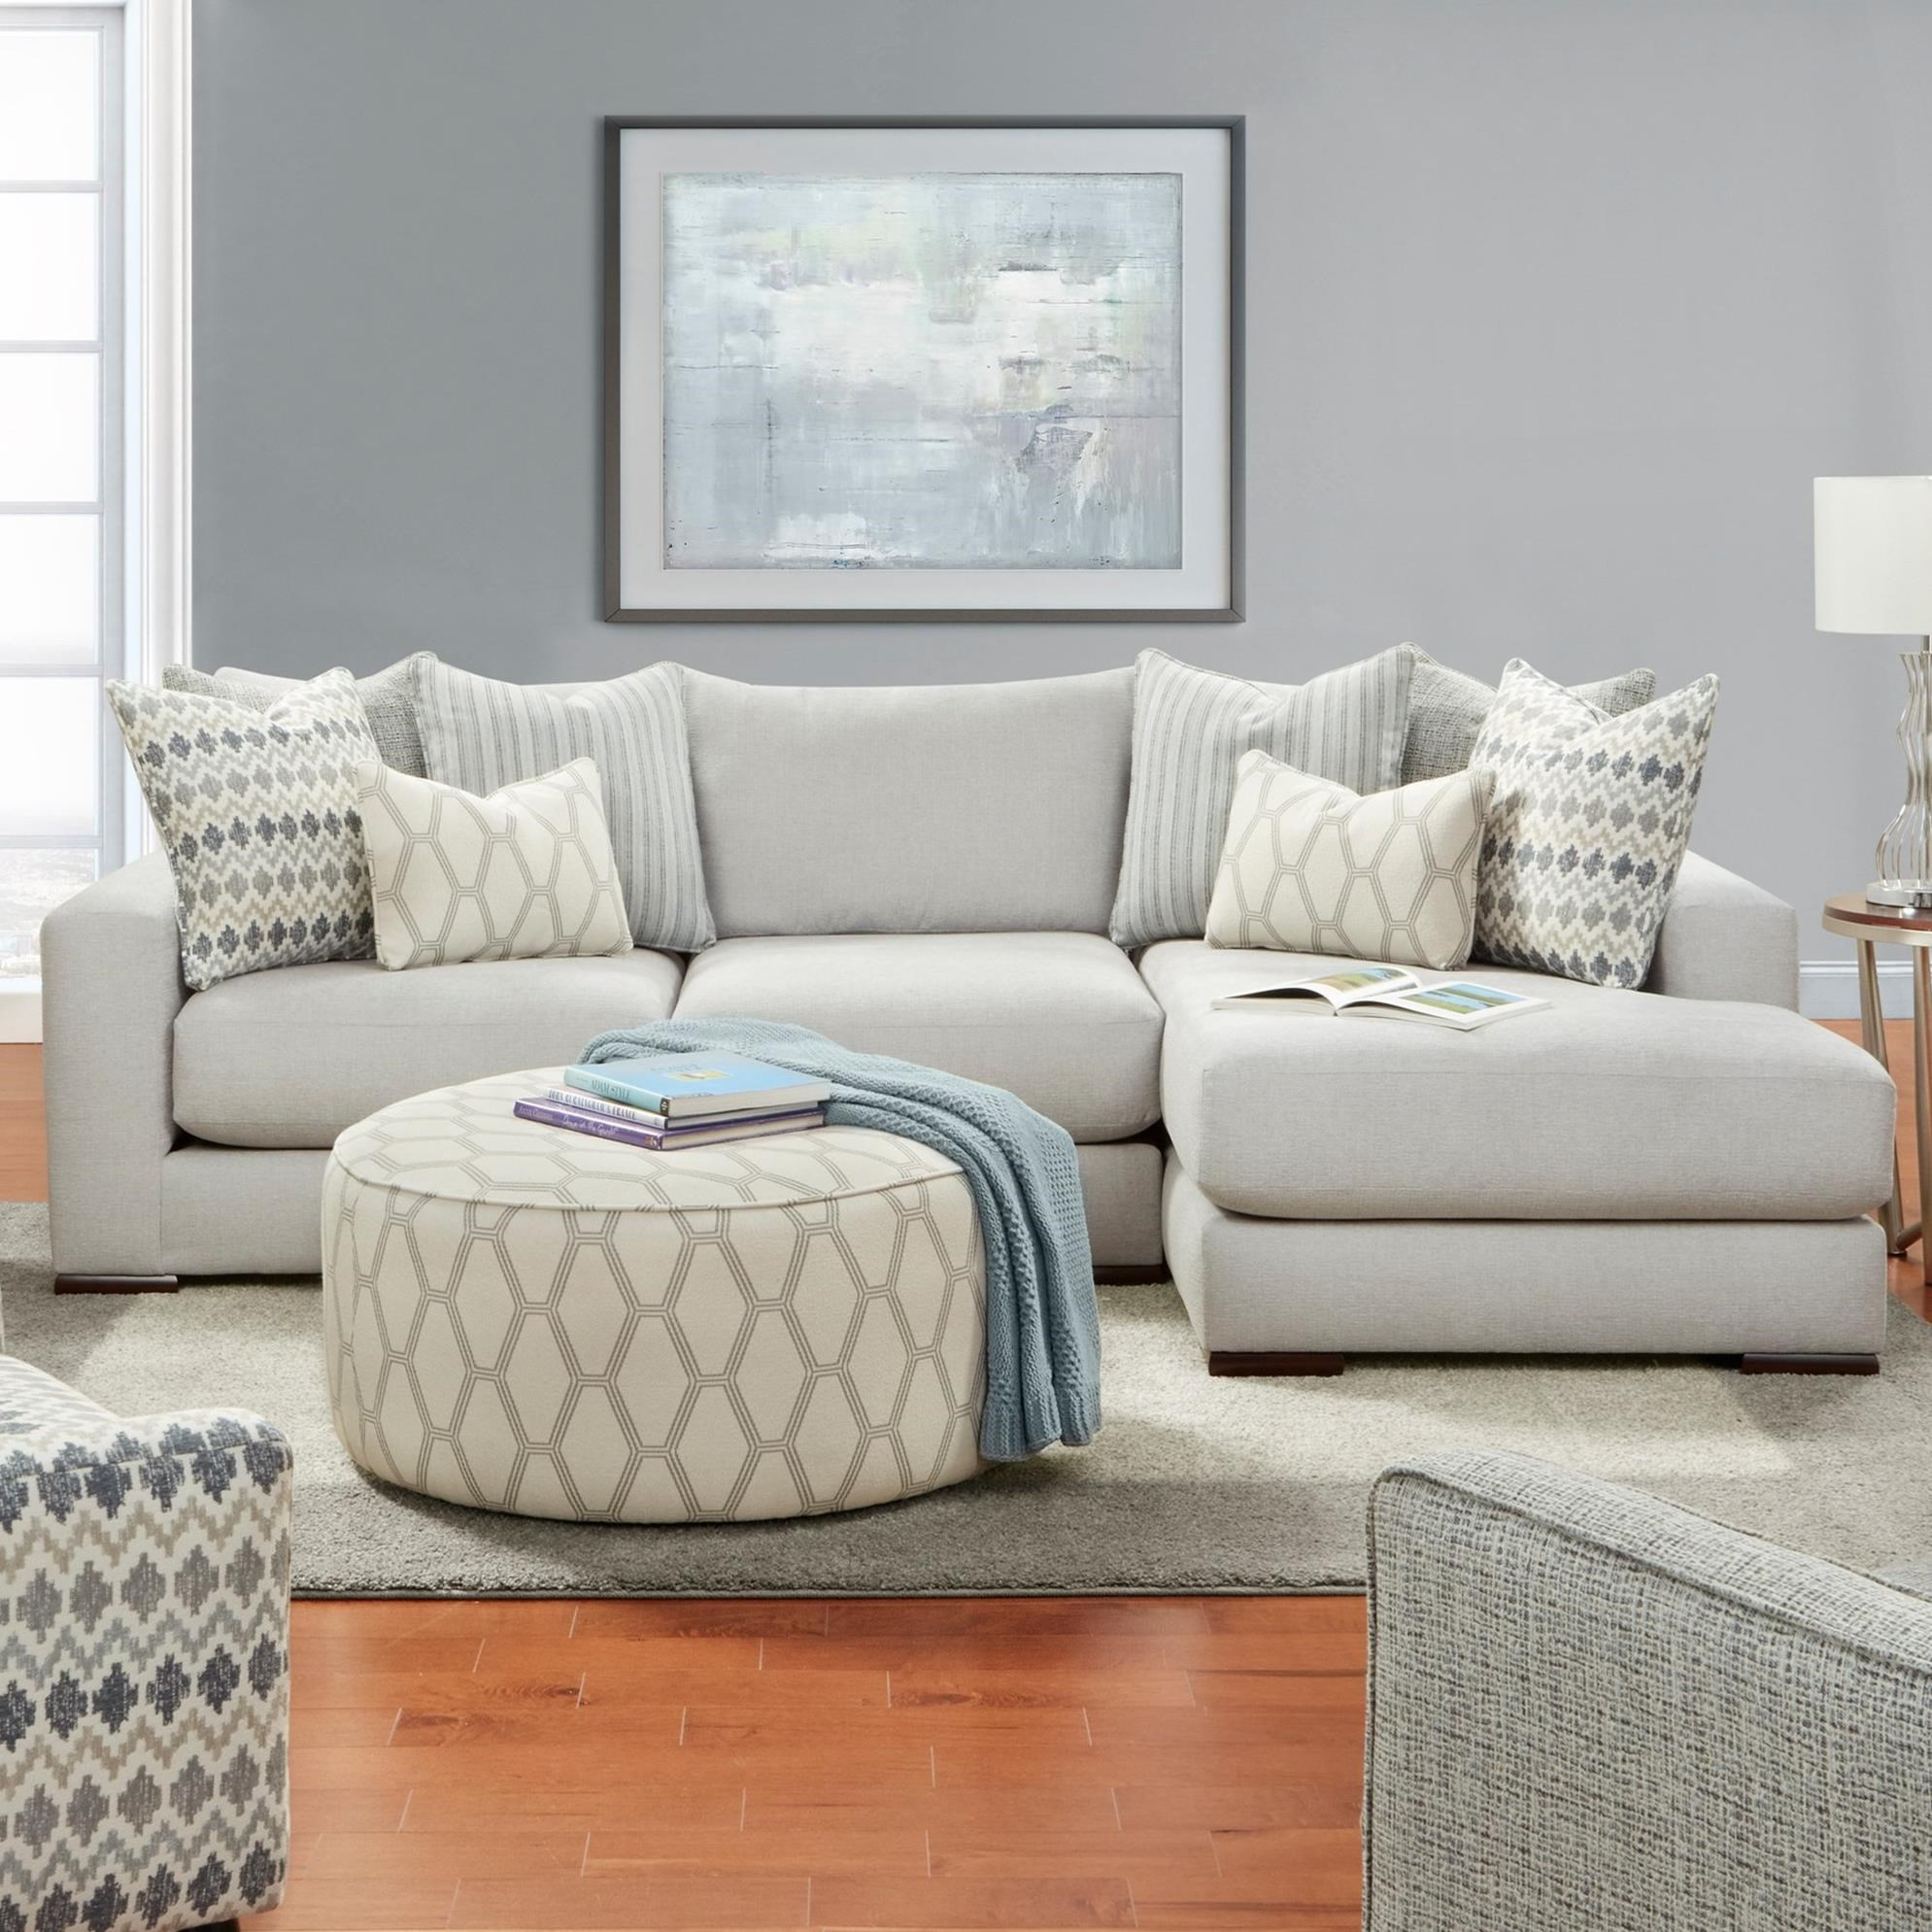 1050-20 2-Piece Sectional with Right Chaise by FN at Lindy's Furniture Company